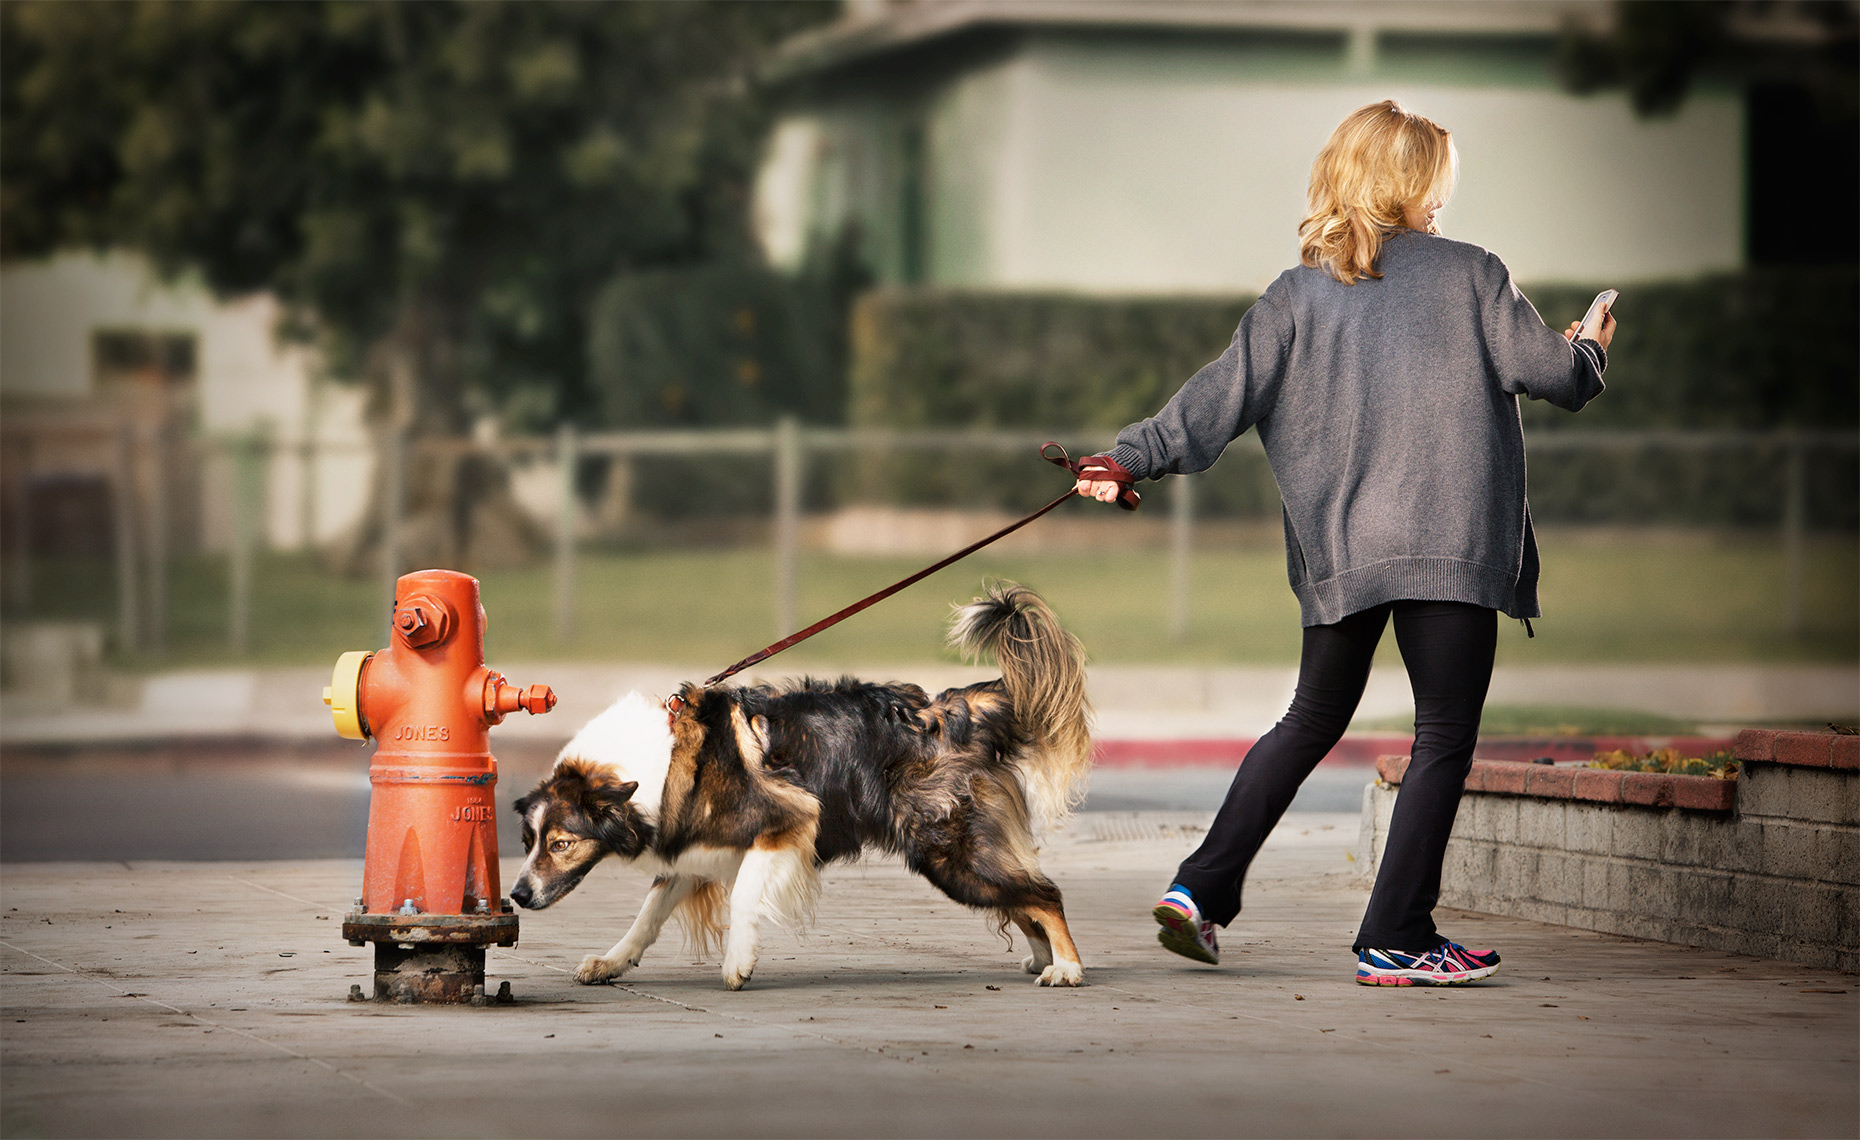 Woman_Dog_Hydrant